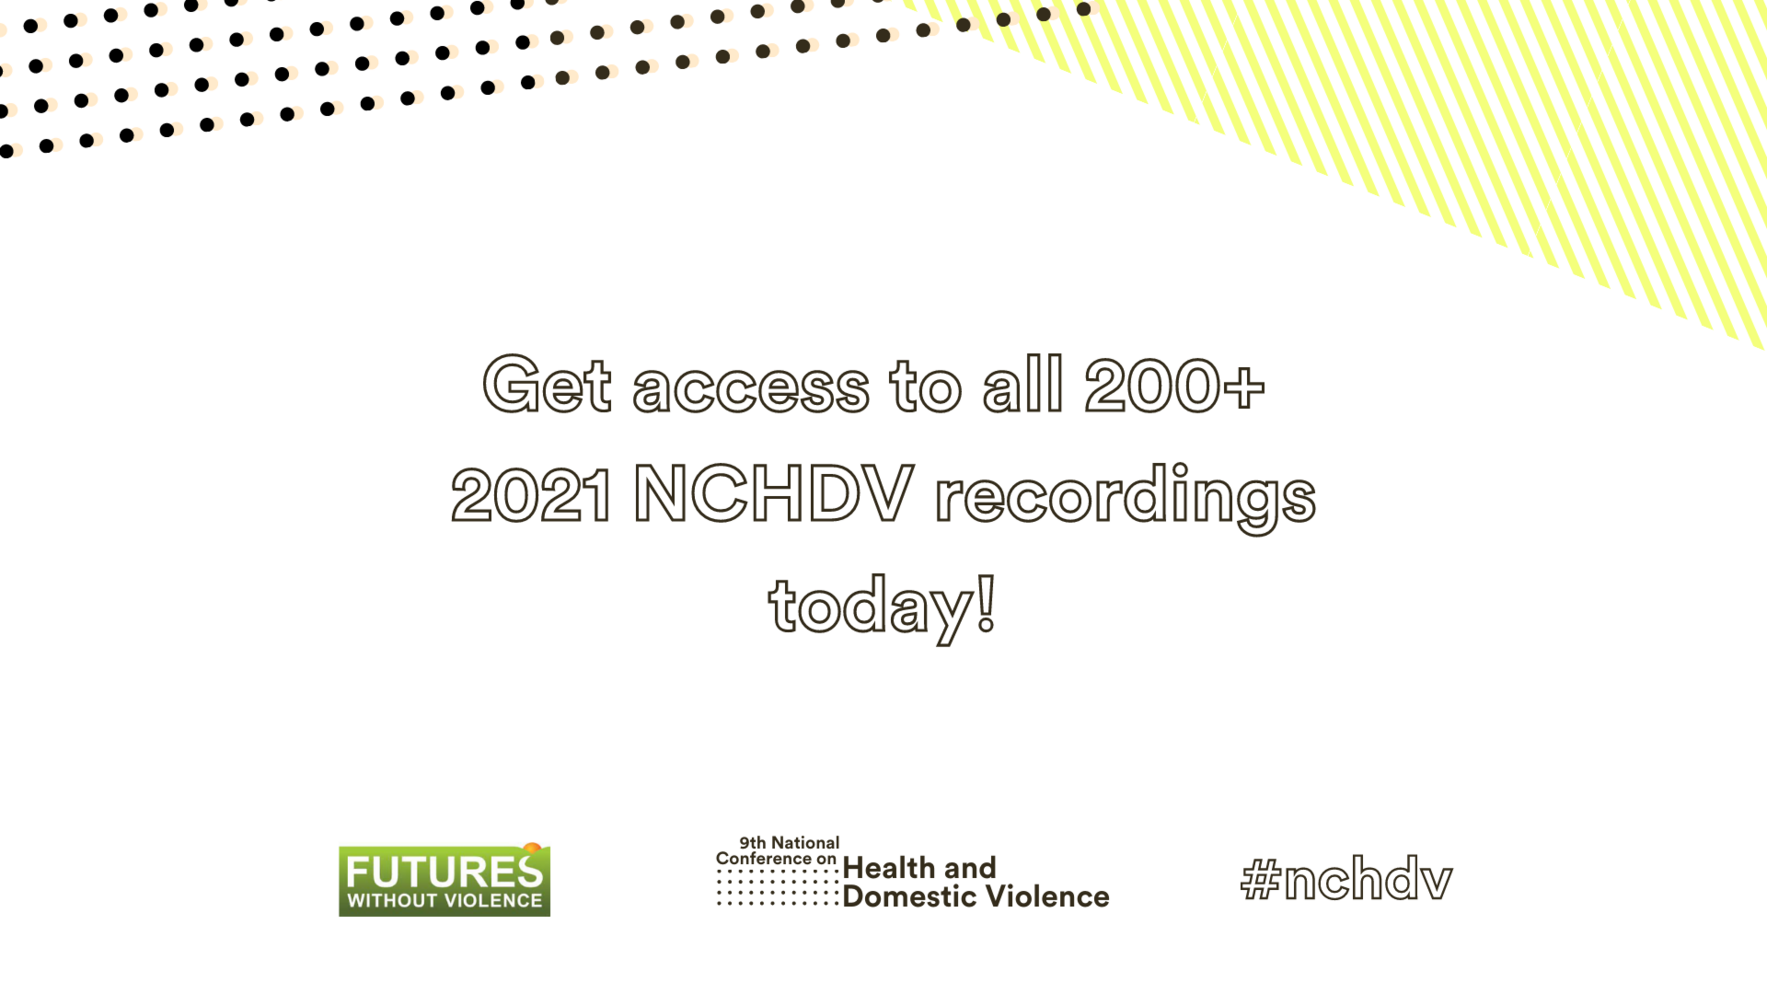 Watch recordings of all sessions from the 2021 NCHDV! image